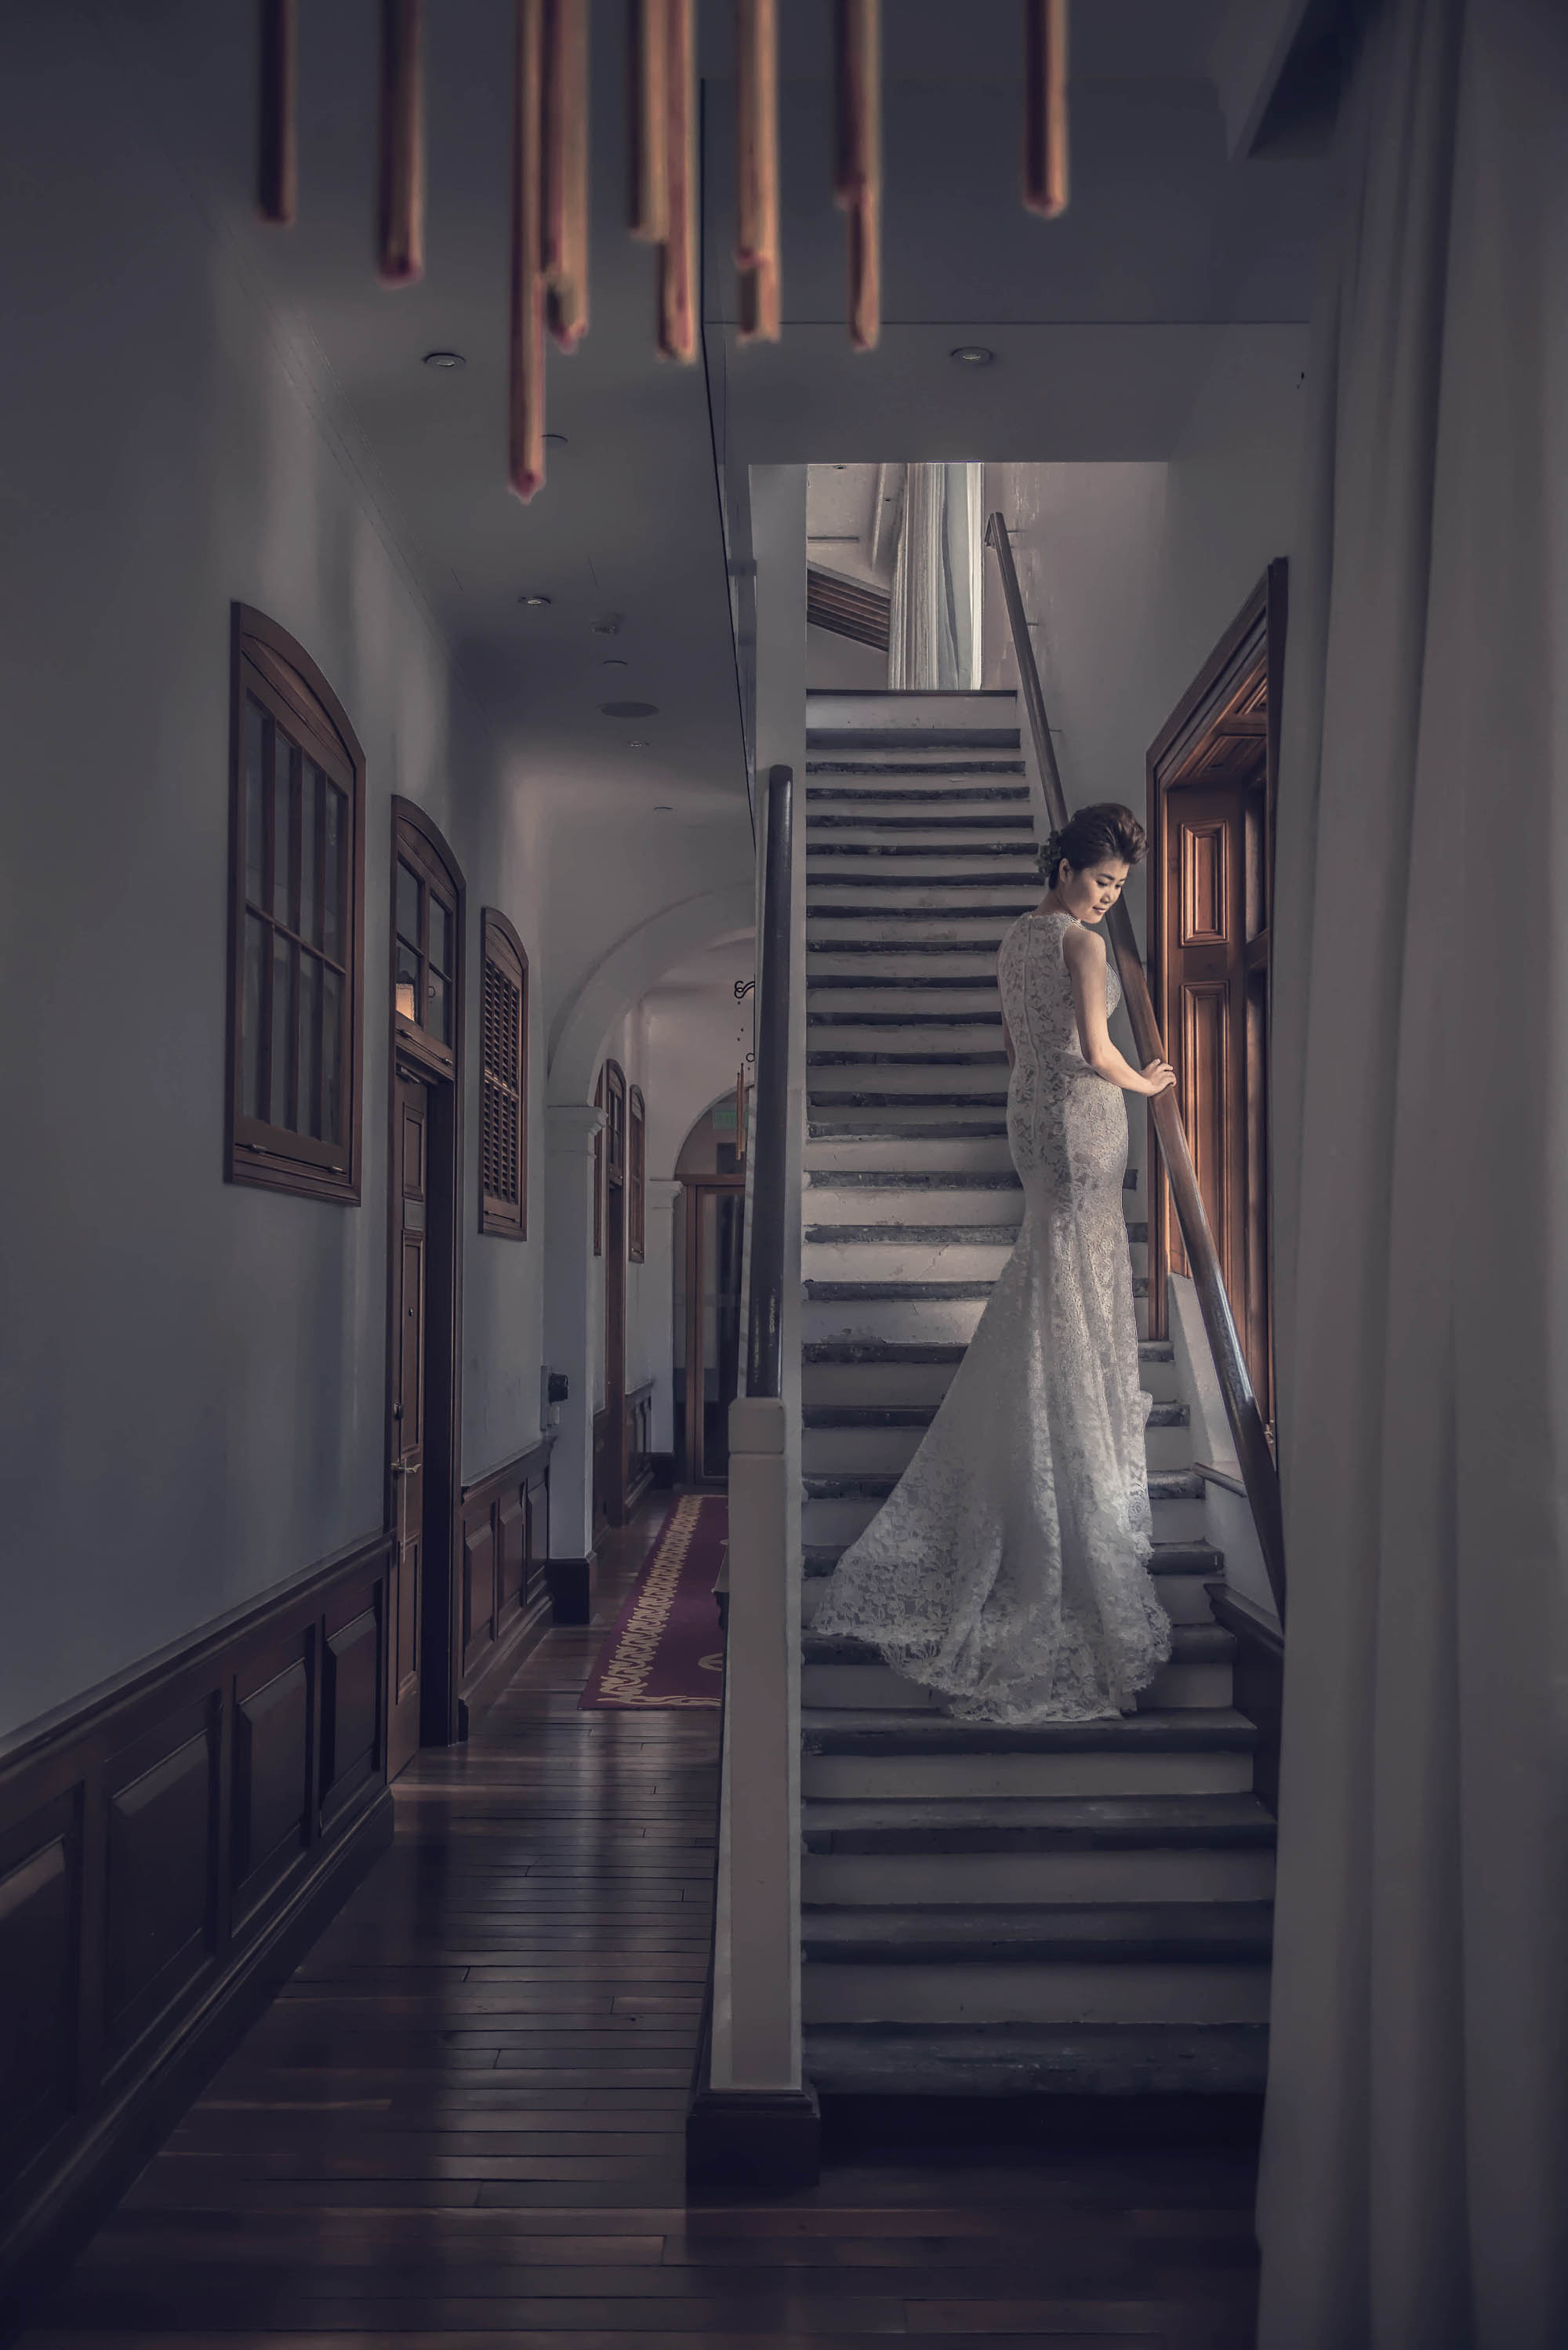 Bride standing on stairs in trumpet lace gown, by CM Leung